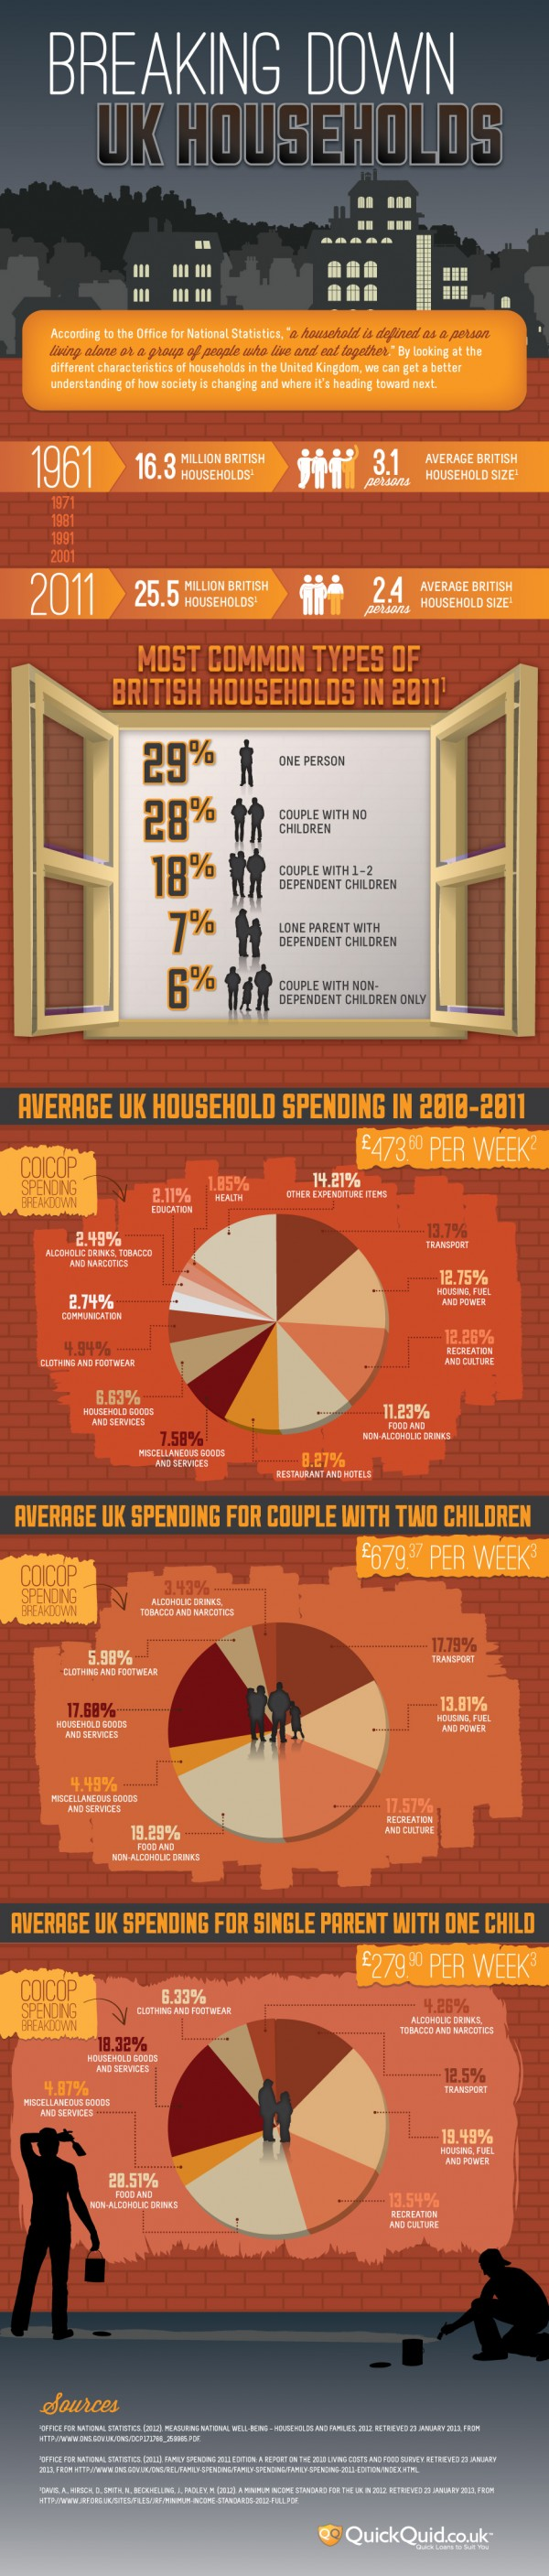 noid-QQ-households-infographic